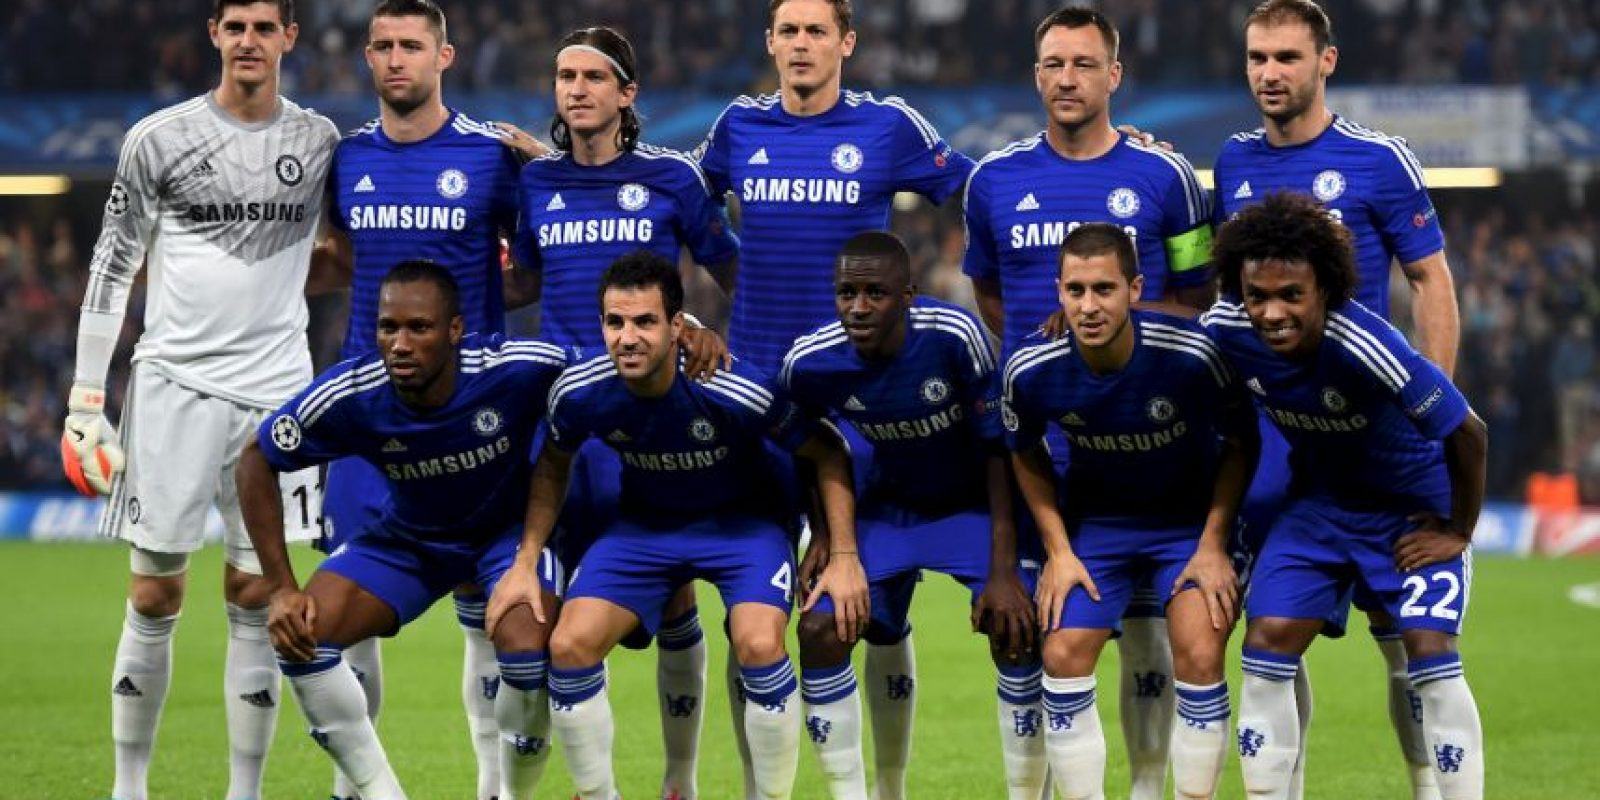 4. Chelsea (Premier League) Foto: Getty Images